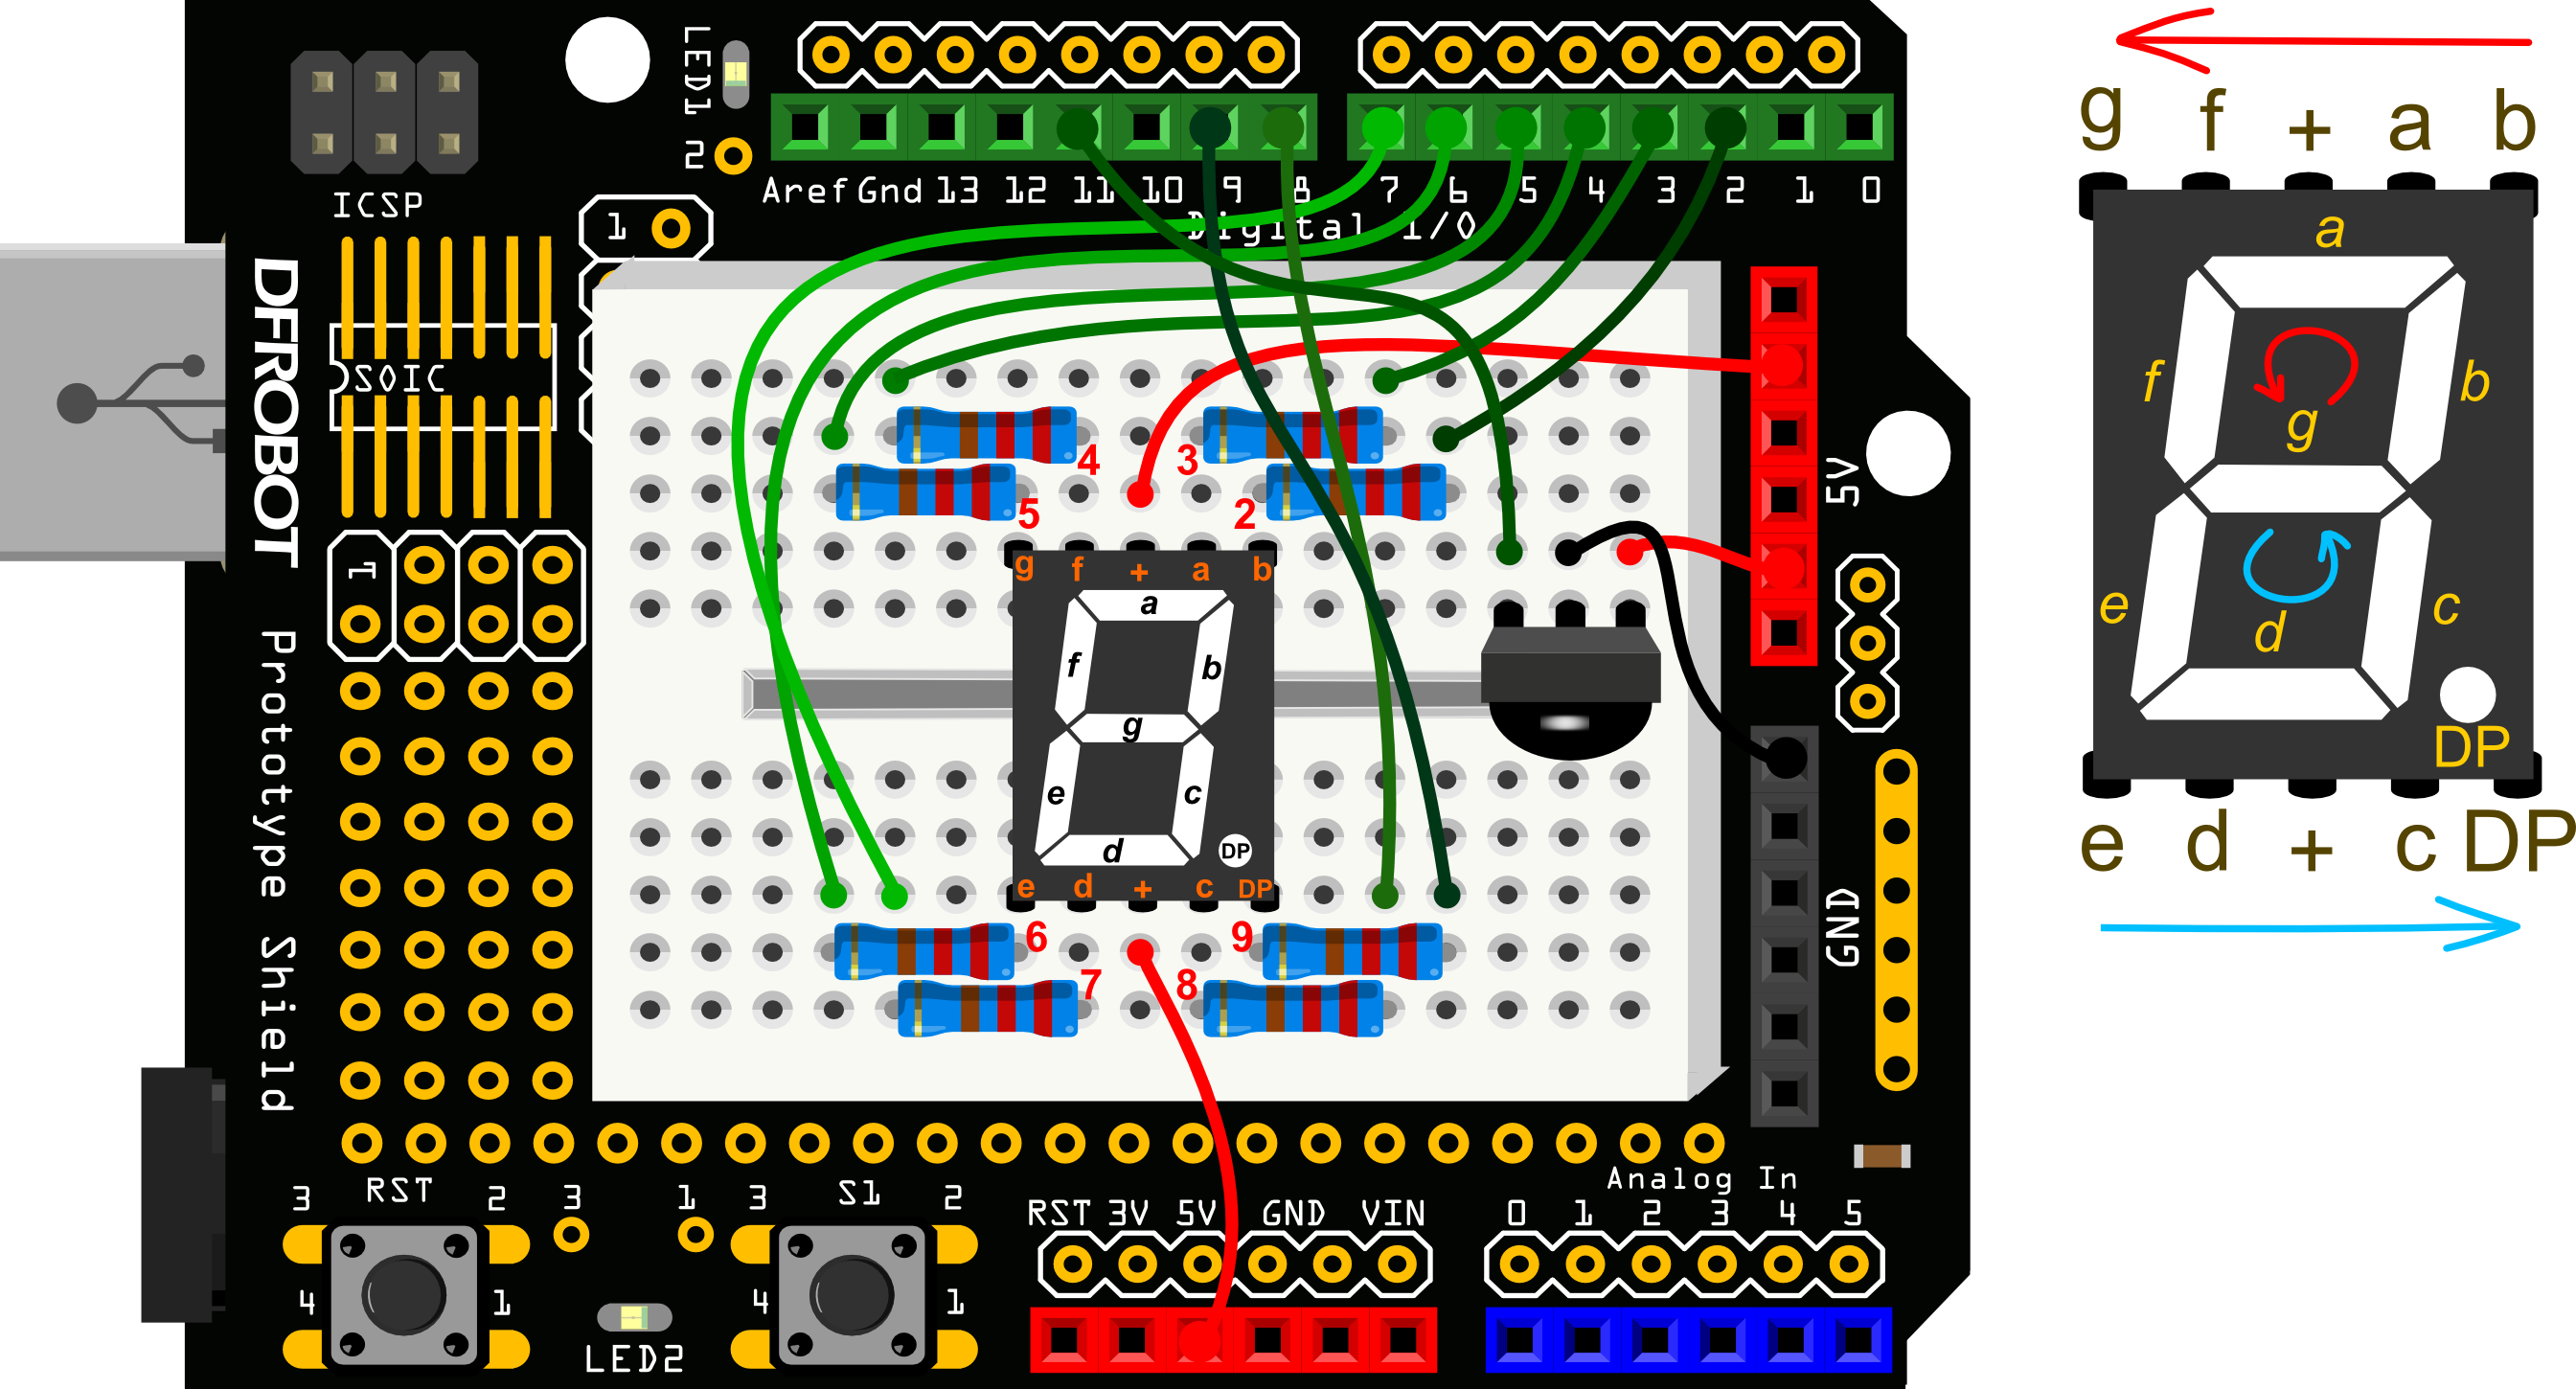 DFRduino_Beginner_Kit_For_Arduino_V3_SKU_DFR0100-DFRobot